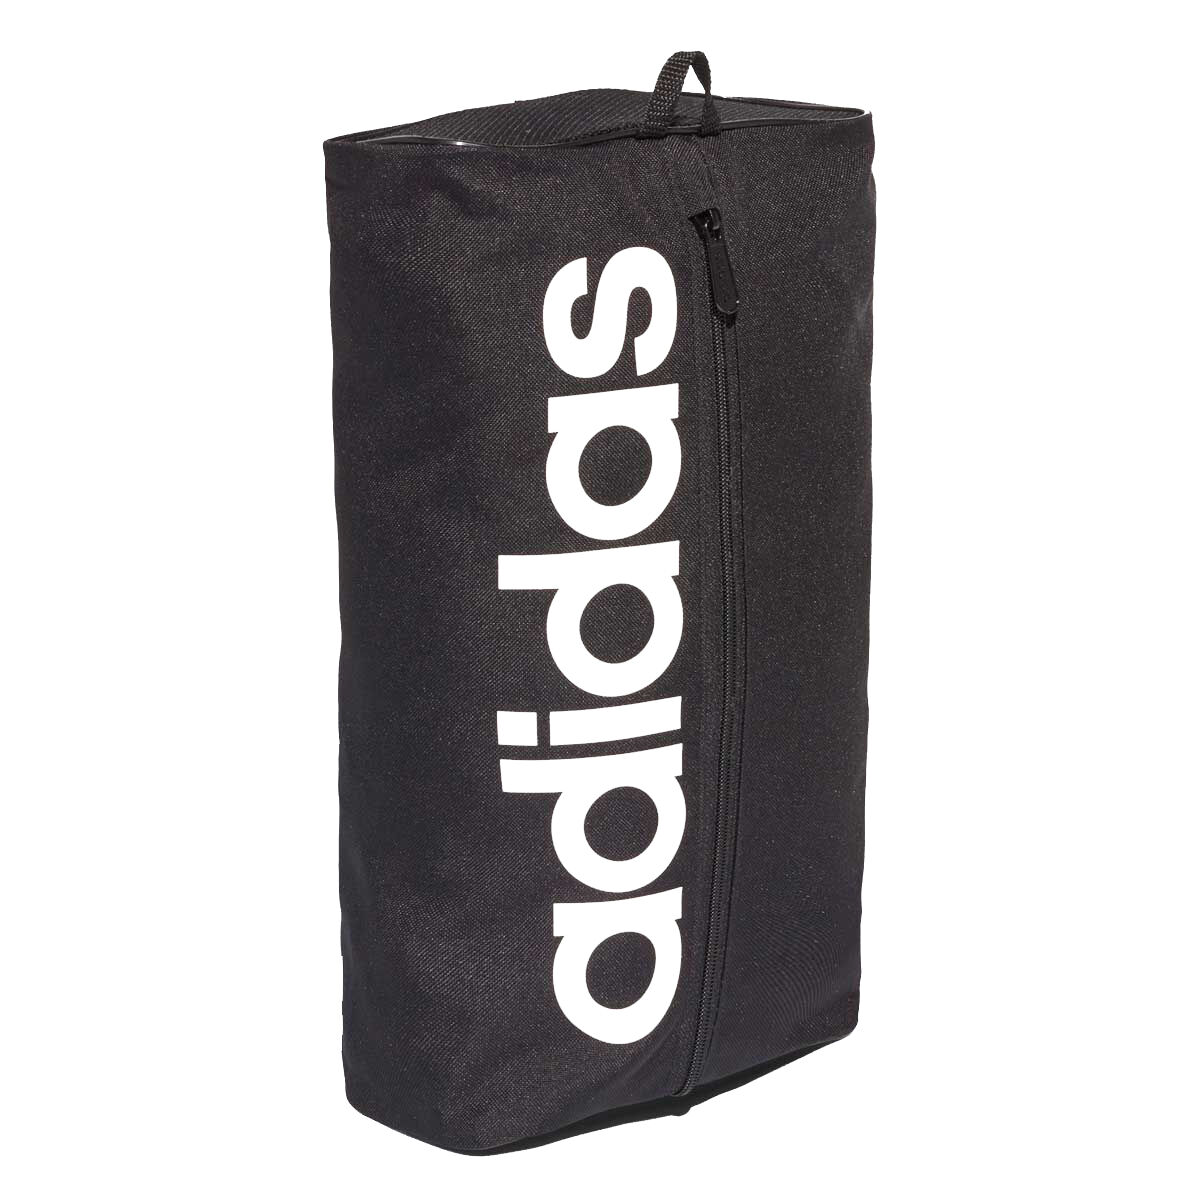 adidas | adidas Linear Core Shoe Bag | Shoe Bags